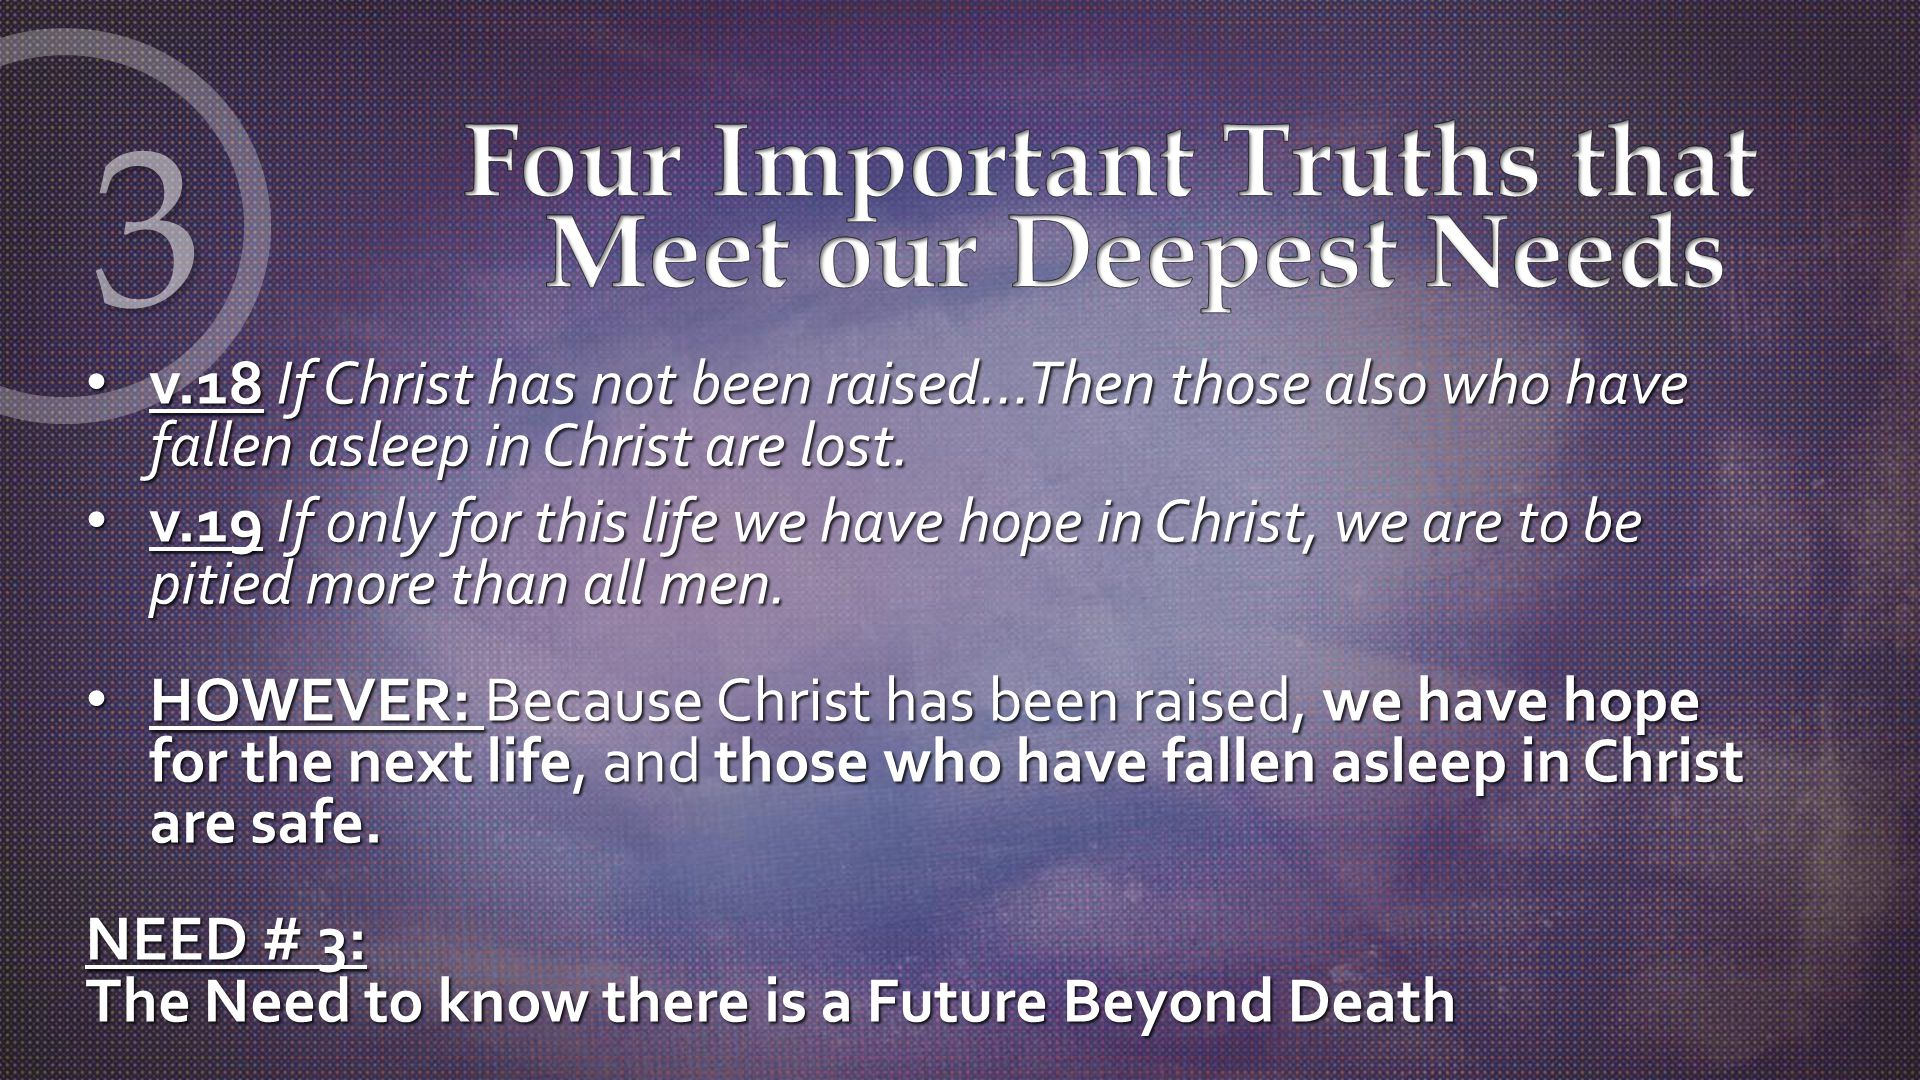 v.18 If Christ has not been raised…Then those also who have fallen asleep in Christ are lost. v.18 If Christ has not been raised…Then those also who h